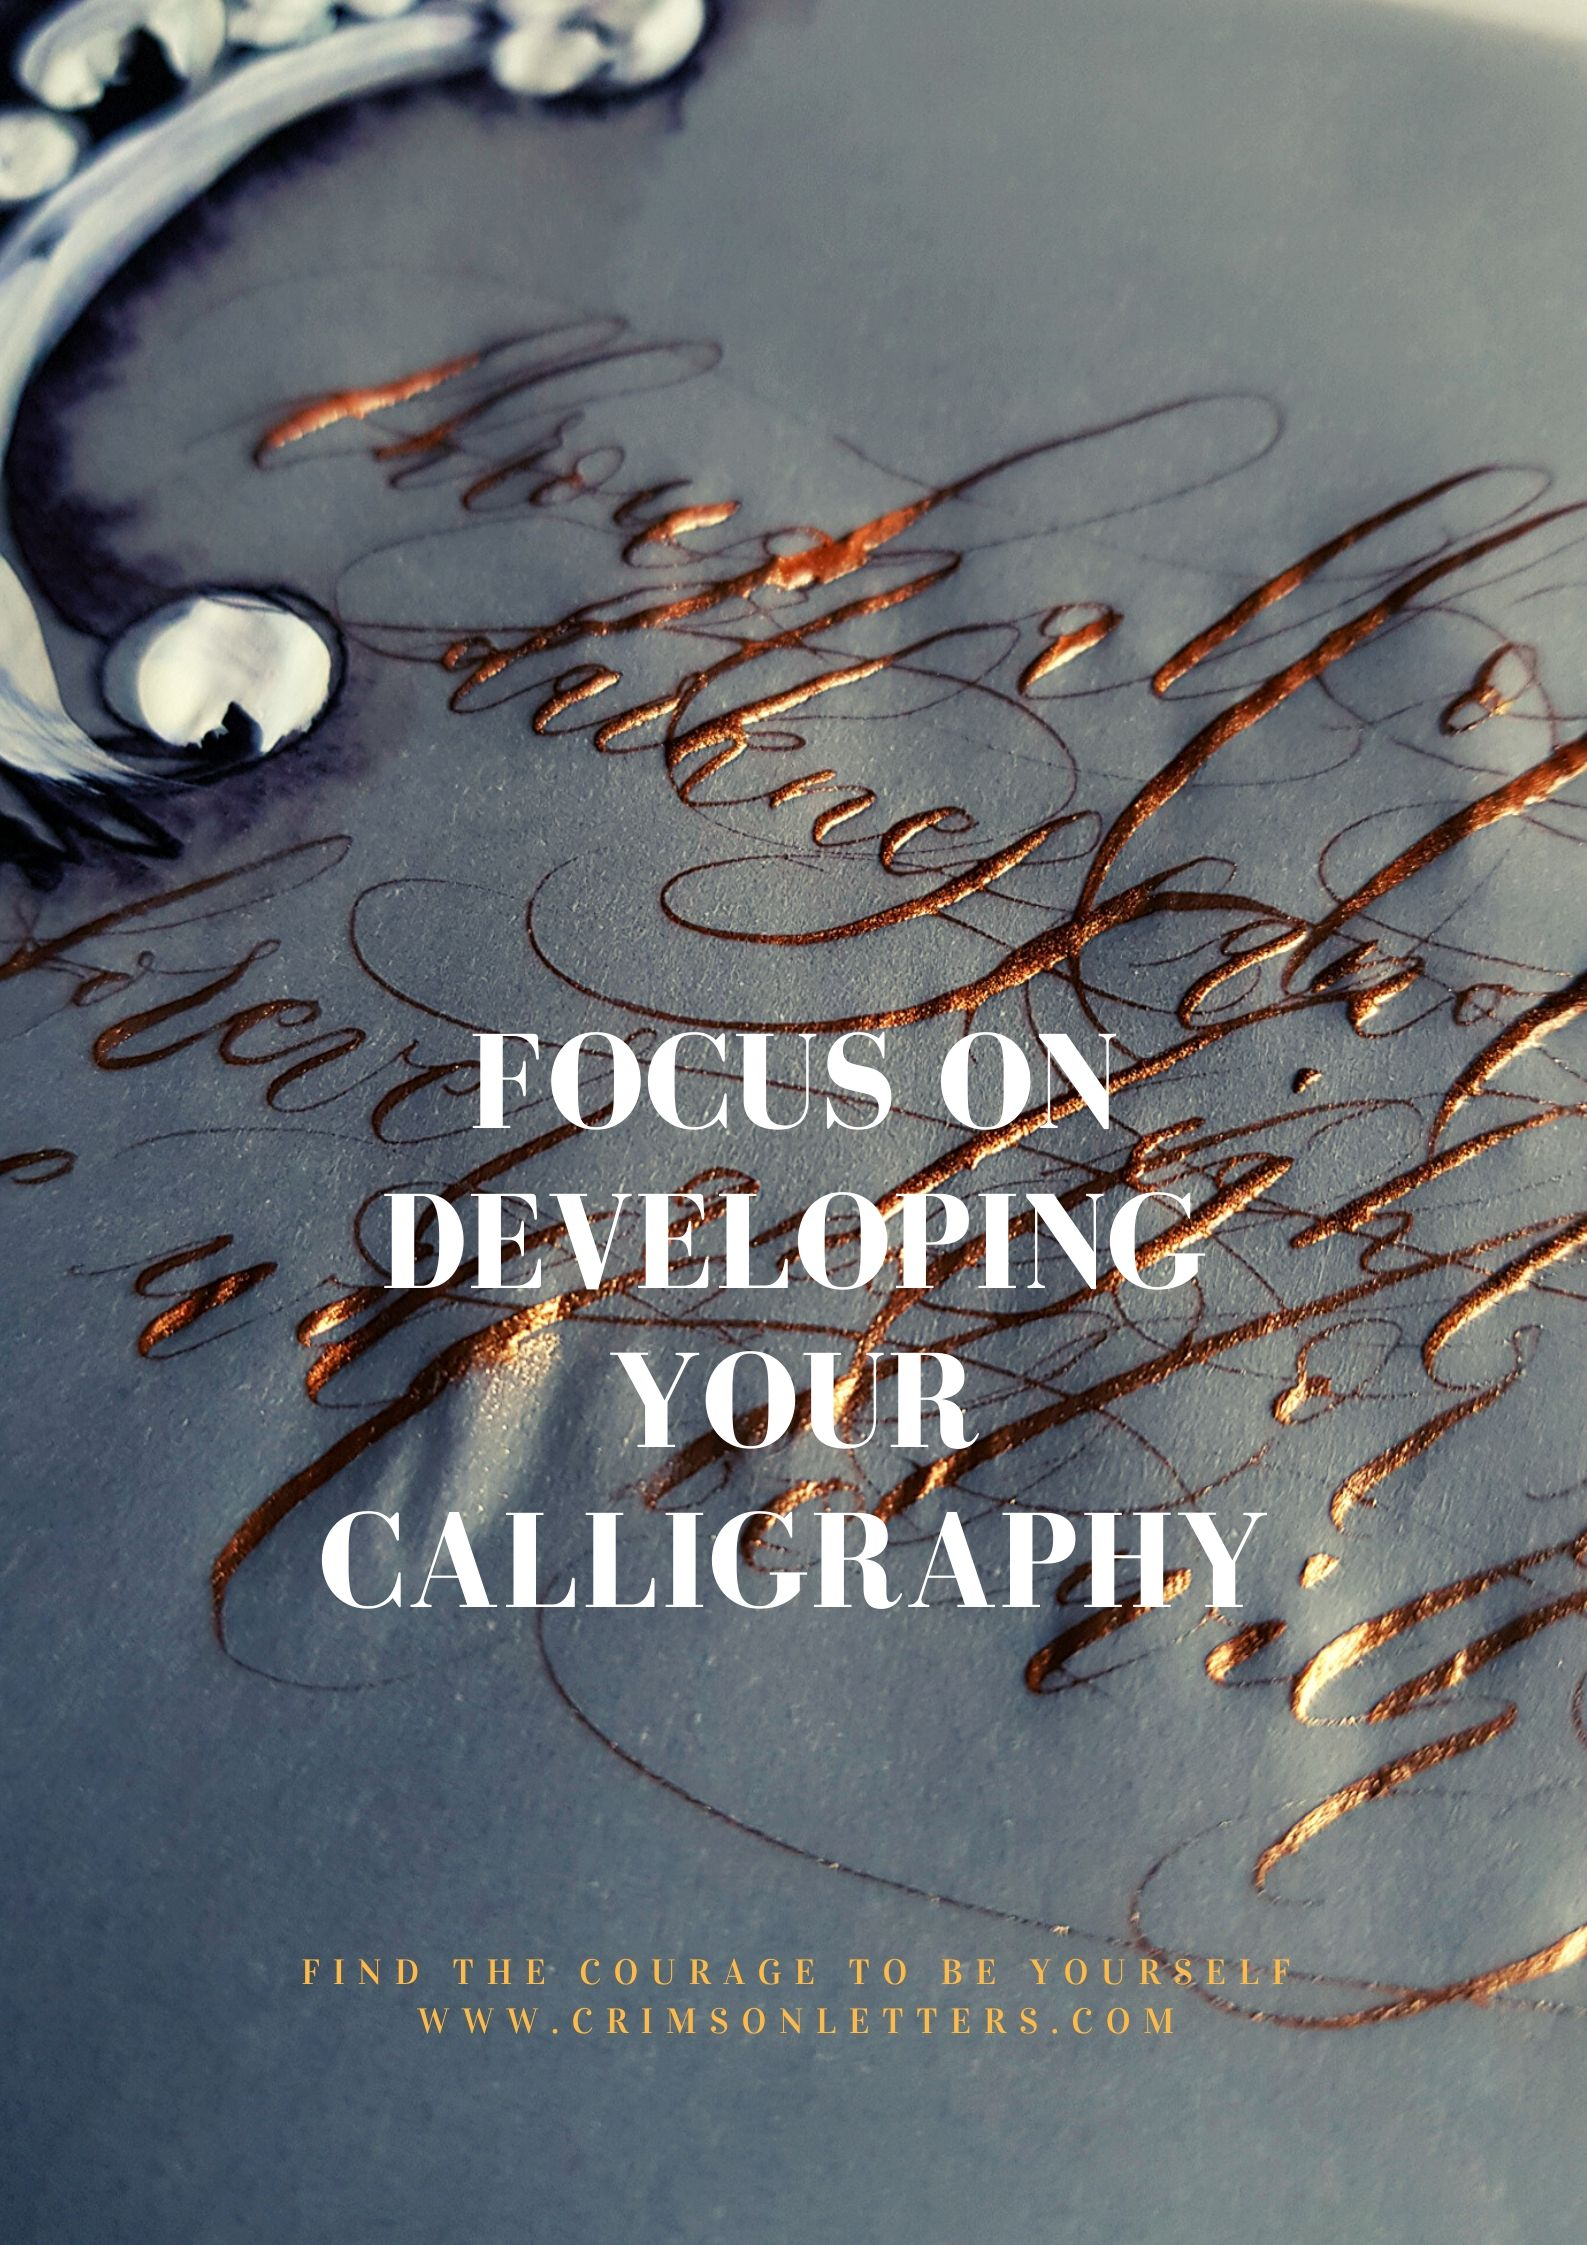 Develop your calligraphy skills